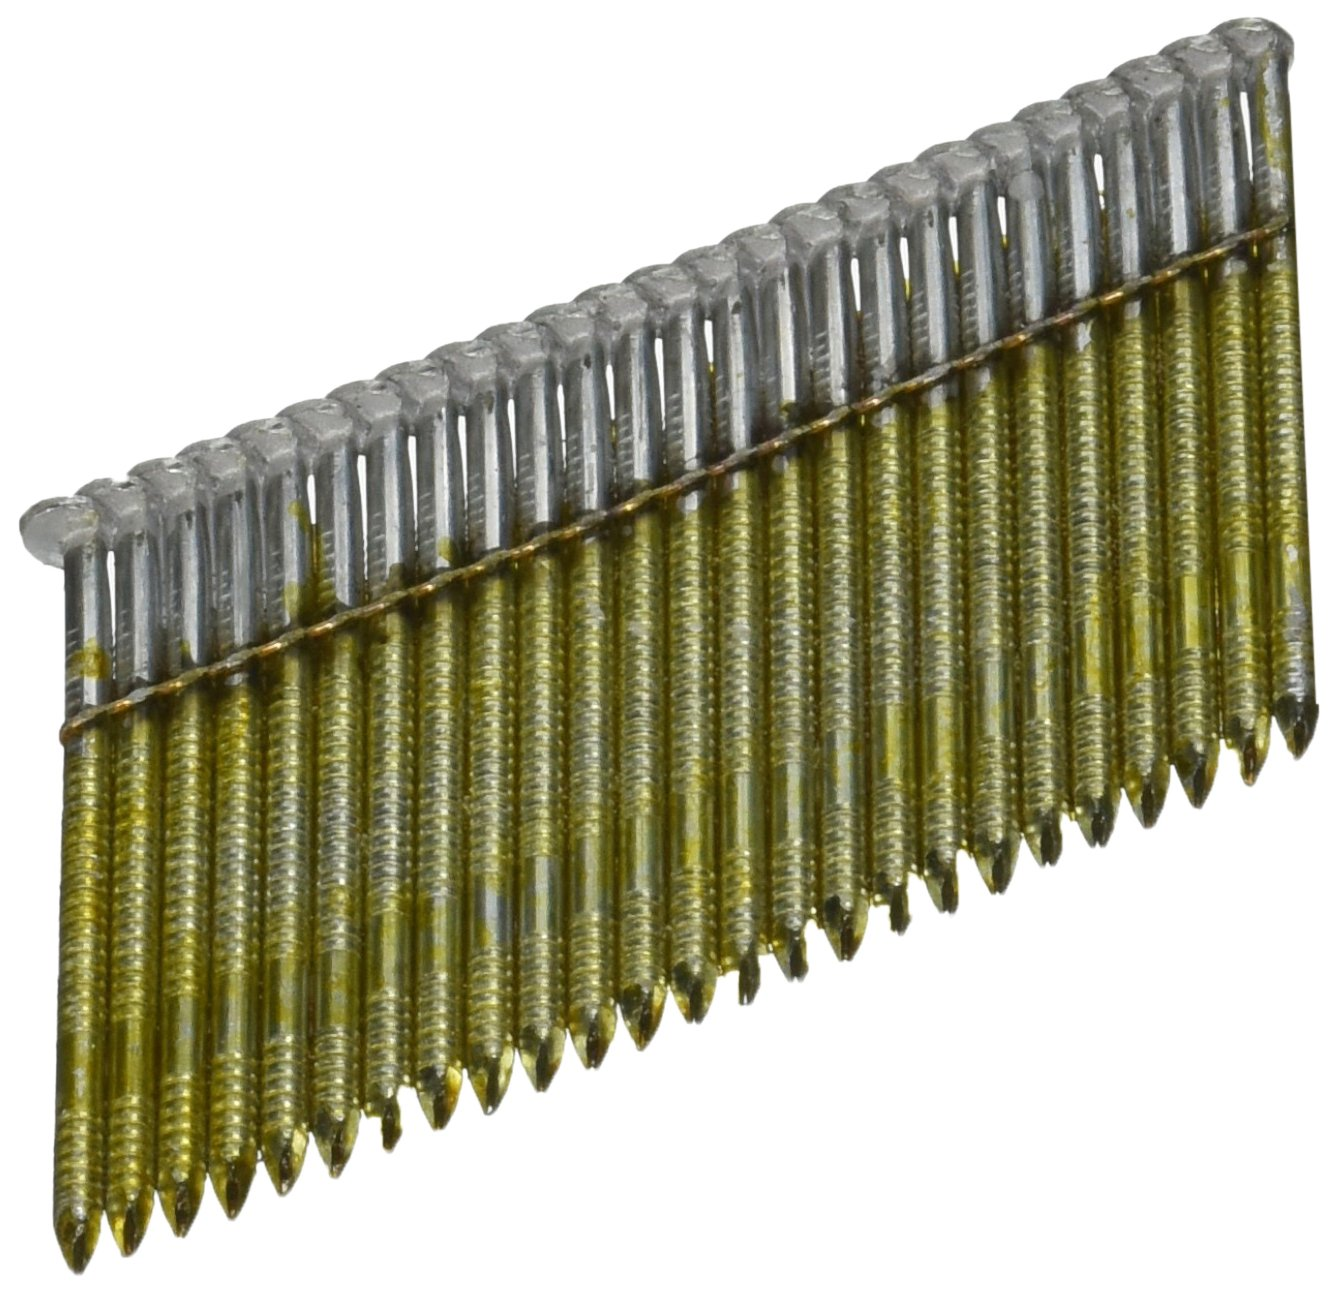 BOSTITCH S8DRGAL-FH 28 Degree 2-3/8-Inch by .120-Inch Wire Weld Galvanized Ringshank Framing Nails (2,000 per Box) by BOSTITCH (Image #1)